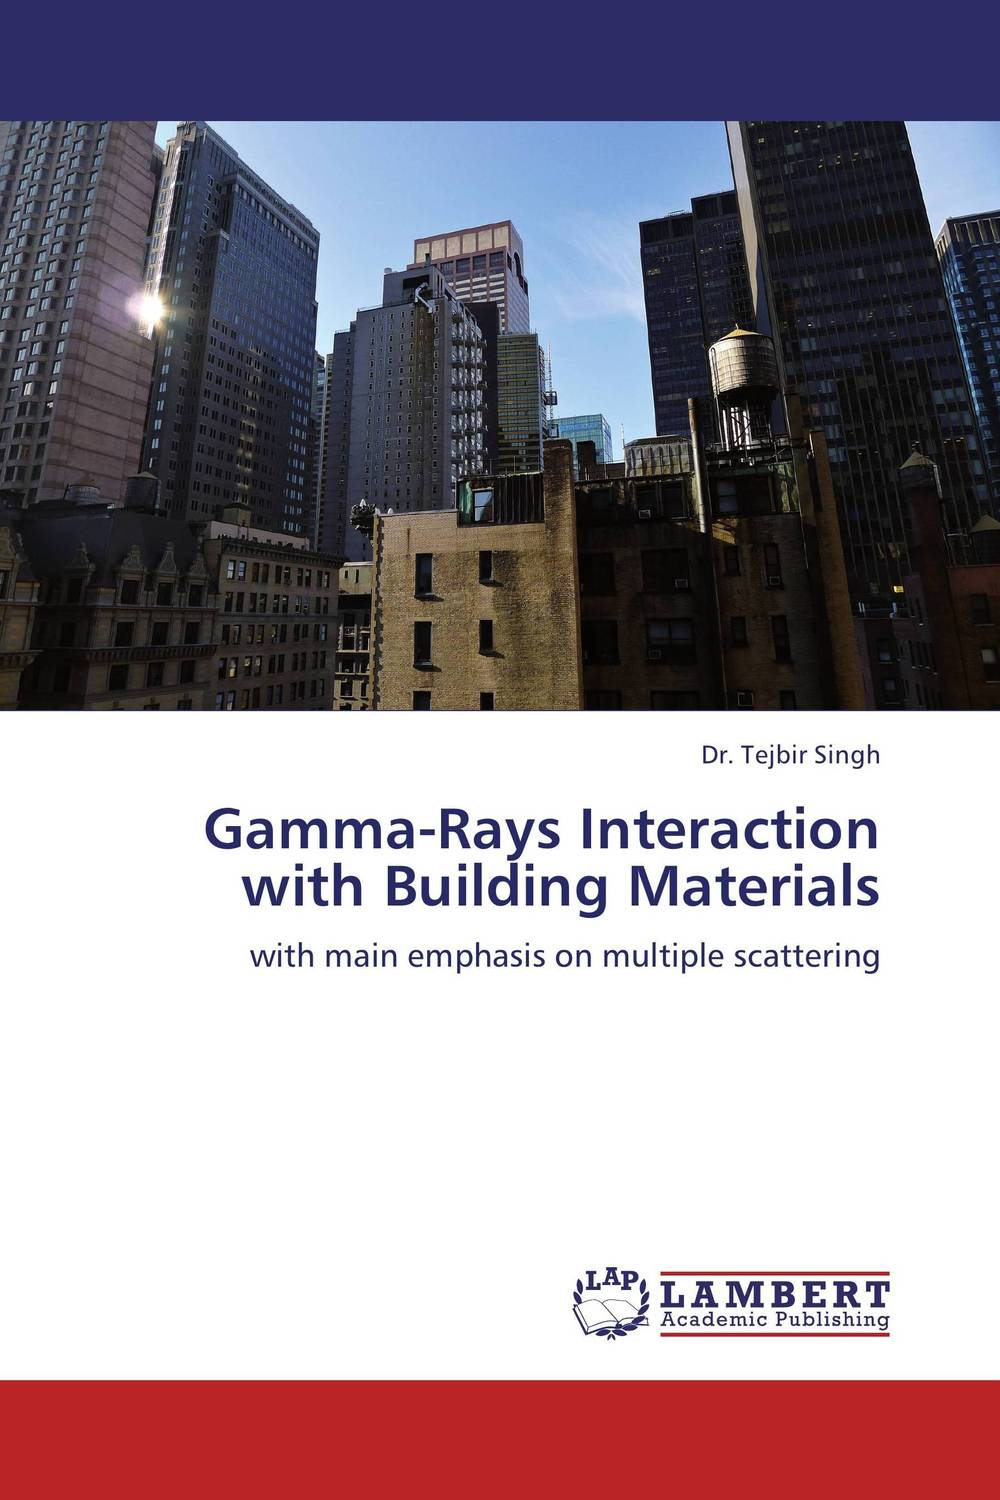 Gamma-Rays Interaction with Building Materials